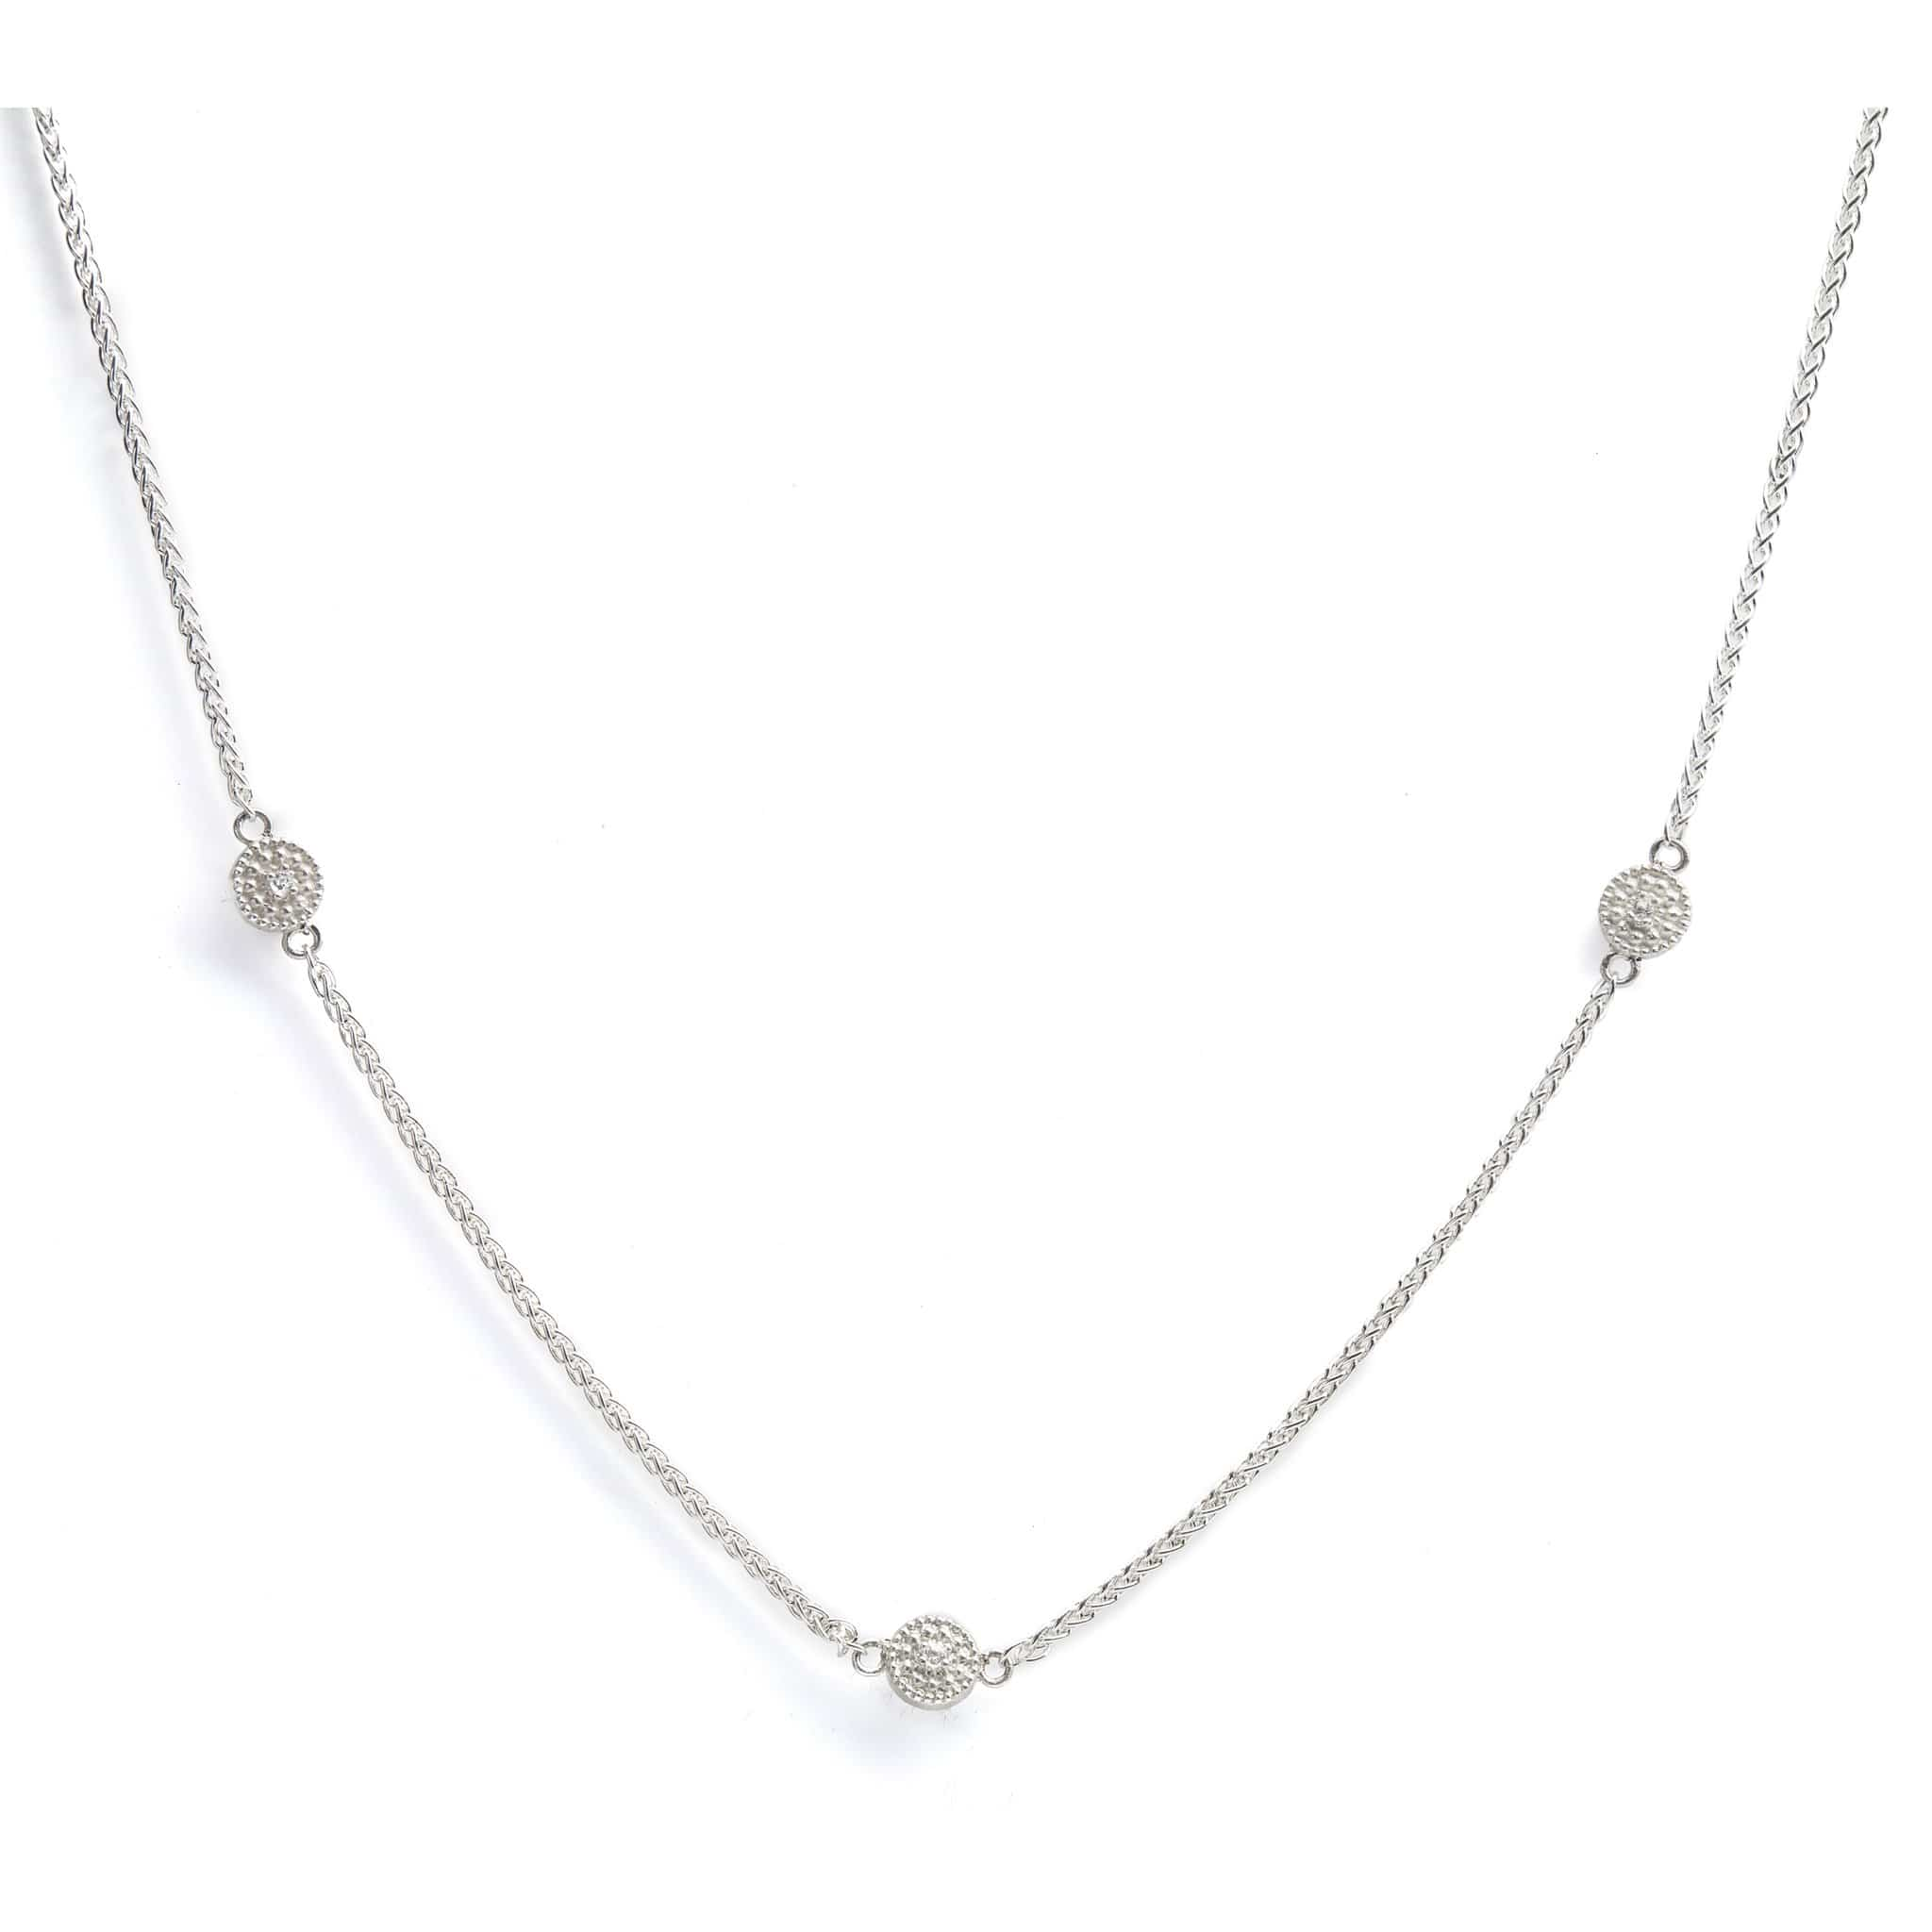 The Reverso Trio Necklace with Crystal Quartz and Aquamarines